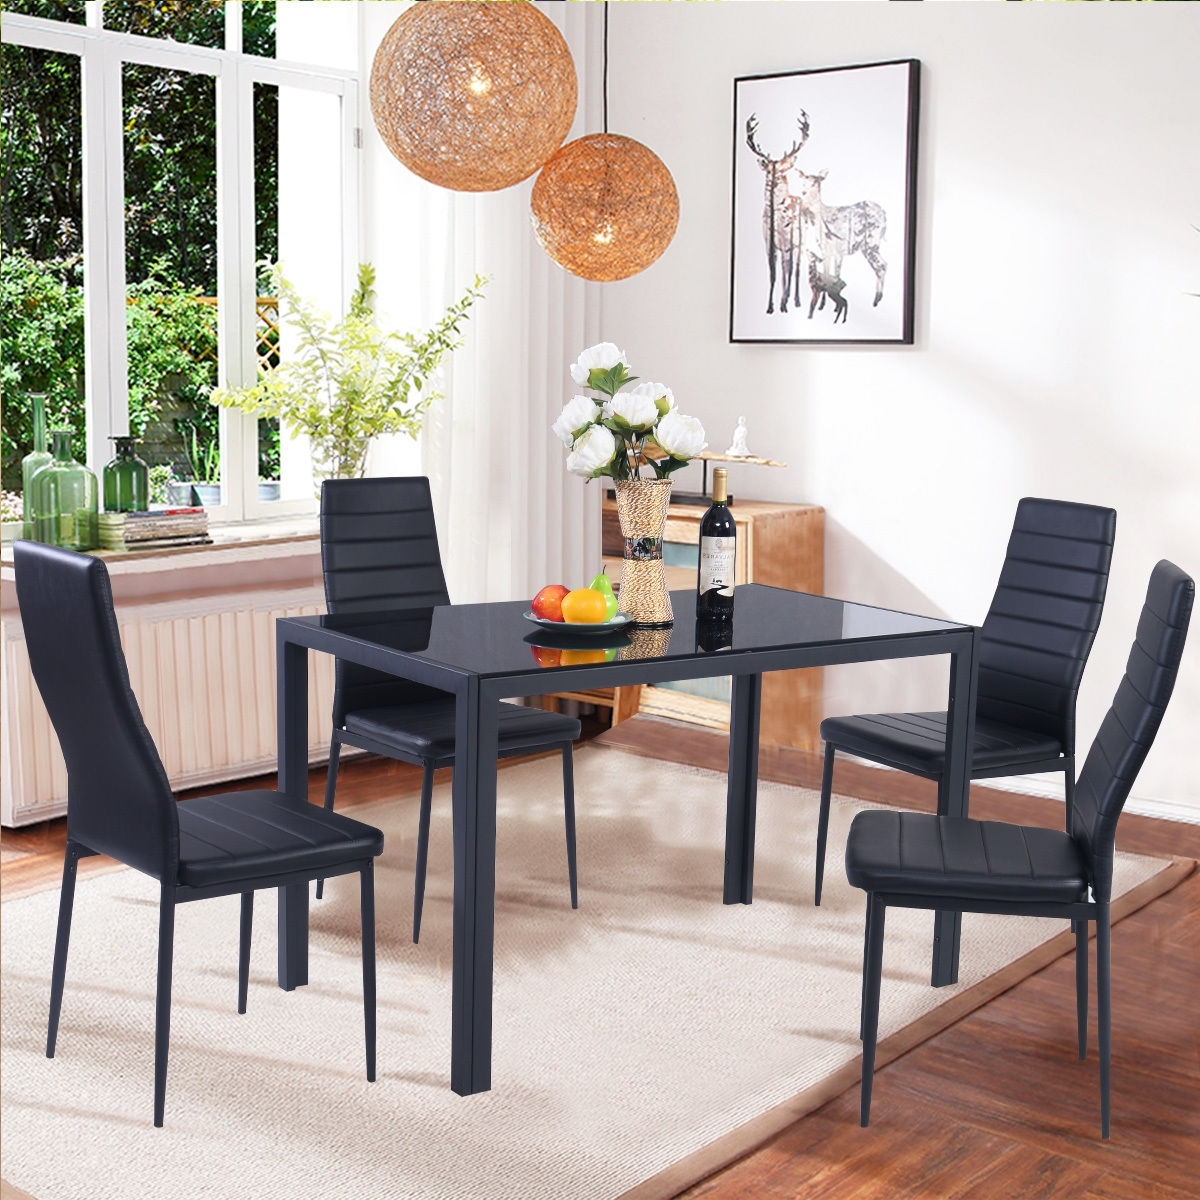 4 Seat Dining Tables In Well Known Costway 5 Piece Kitchen Dining Set Glass Metal Table And 4 Chairs (Gallery 6 of 25)